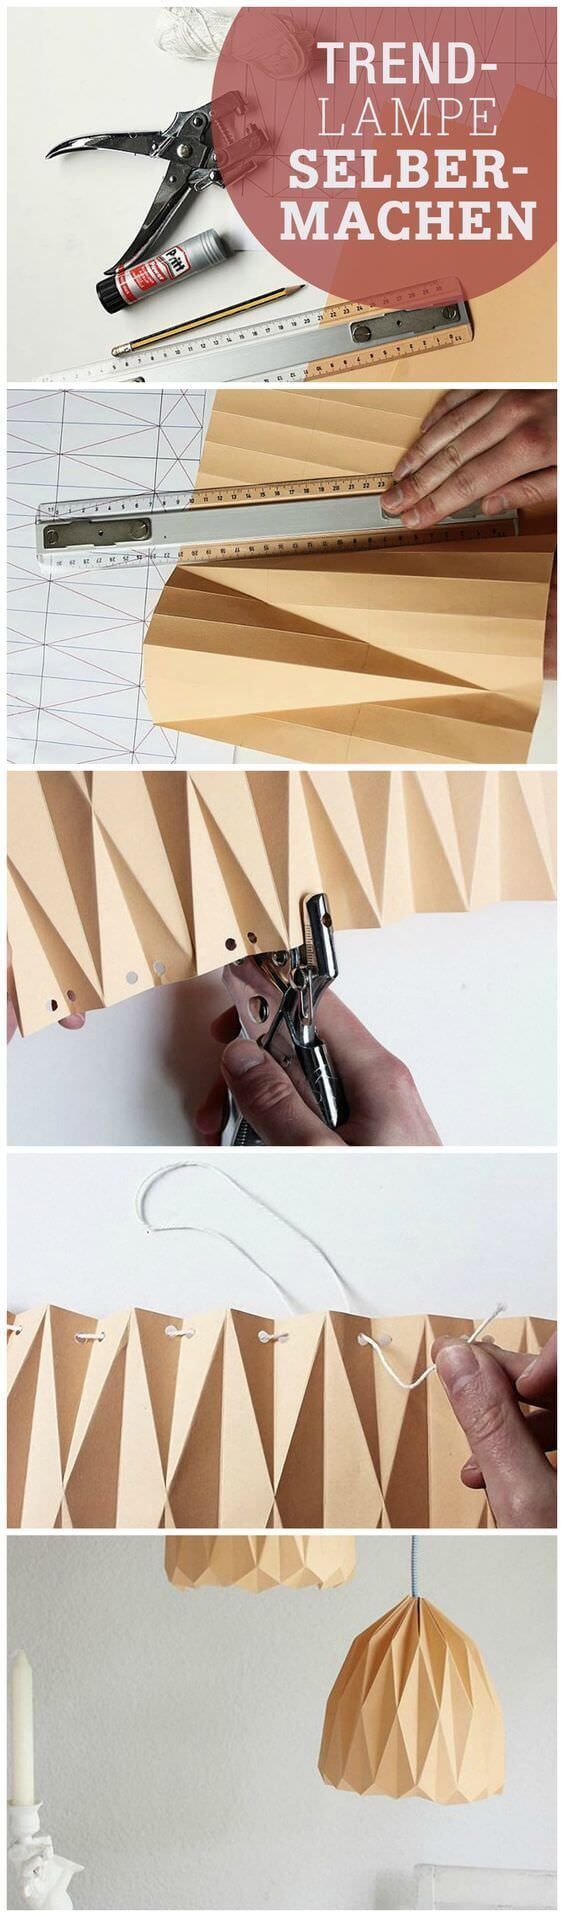 best lamps diy images on pinterest lamp shades lampshades and